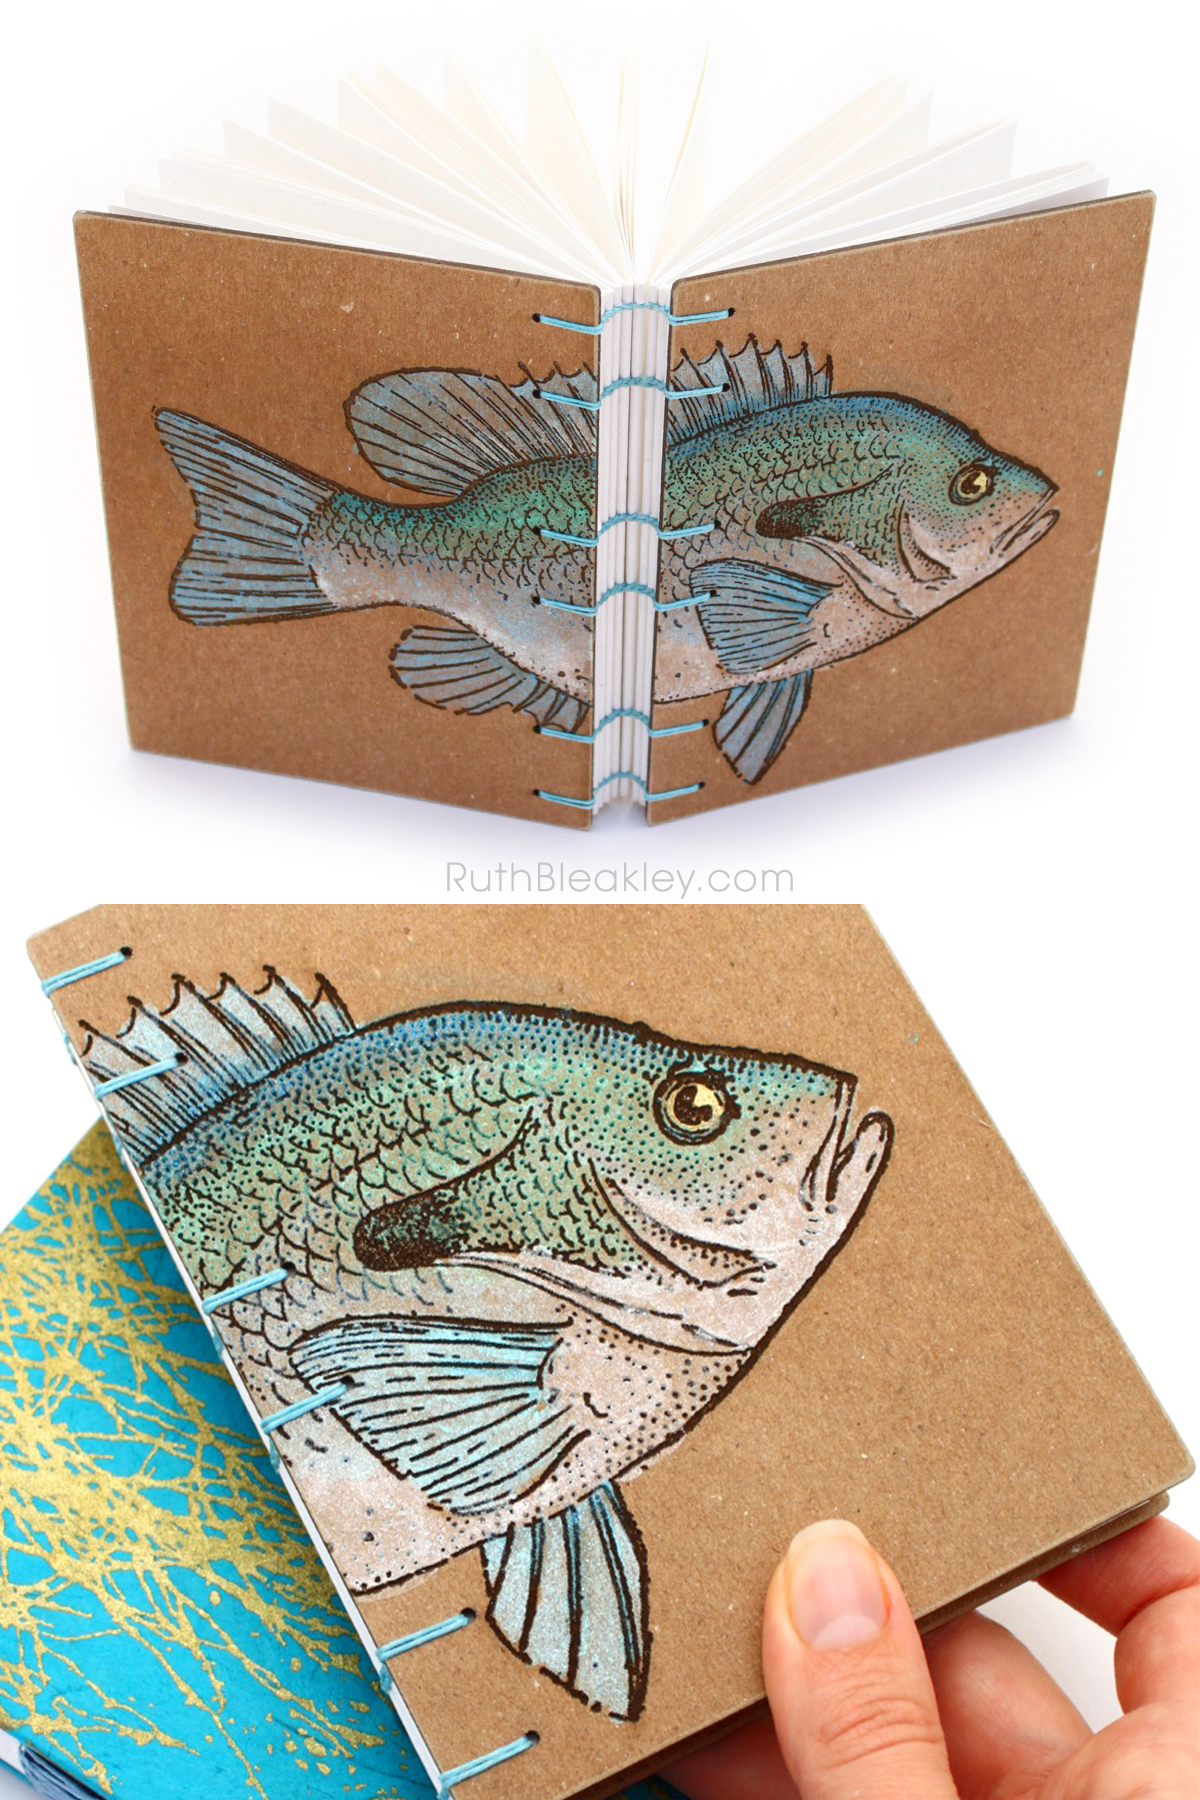 Fish Journal hand bound and hand painted by Ruth Bleakley